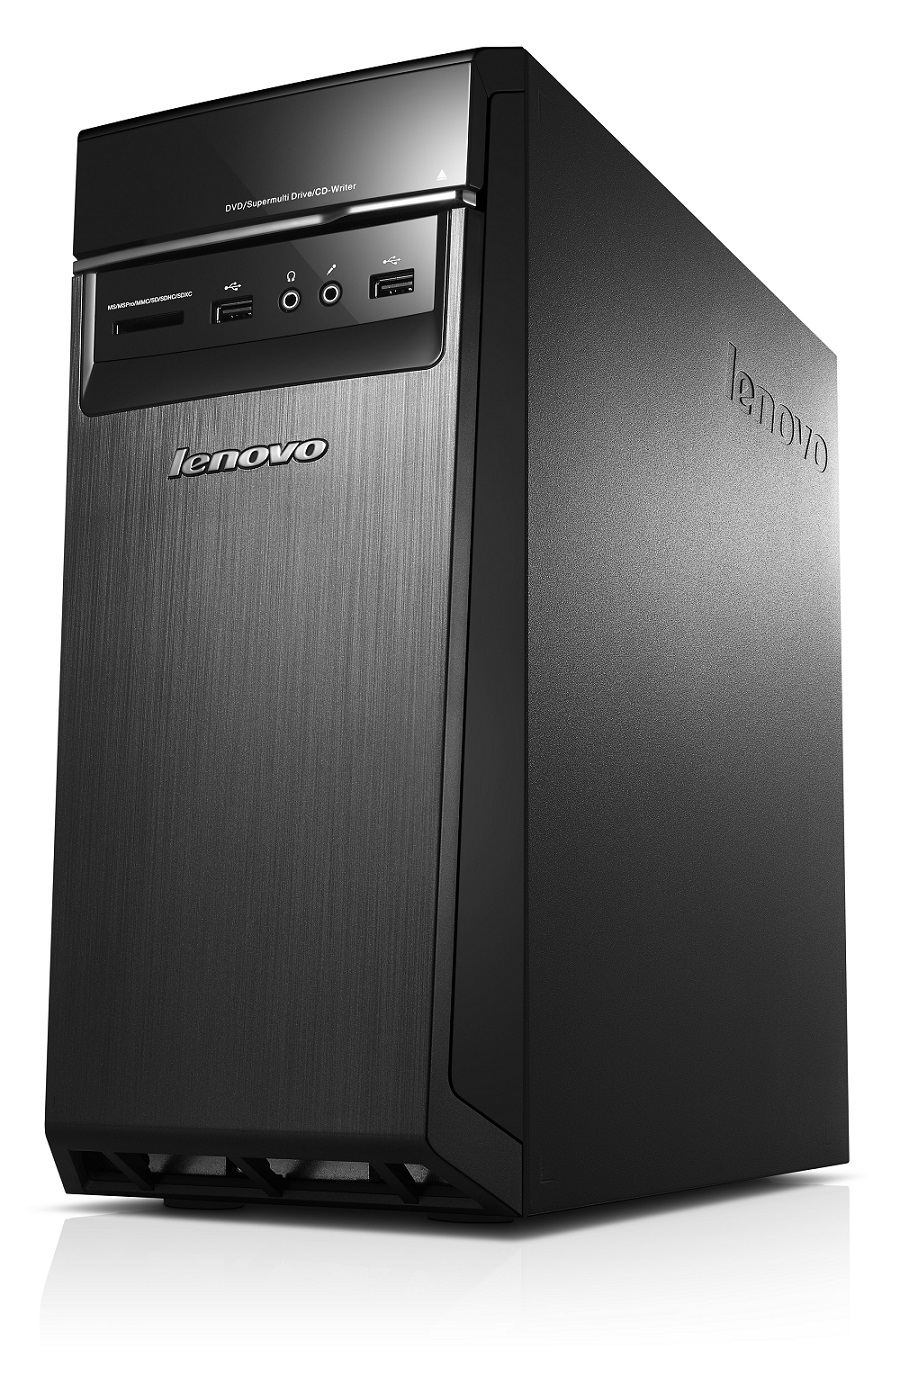 Lenovo IdeaCentre H50-55 A10-7800 3.90 GHz/8GB/SSHD 1TB+8GB/GeForce 2GB/DVD-RW/tower 20l/WIN10 90BF004ACK